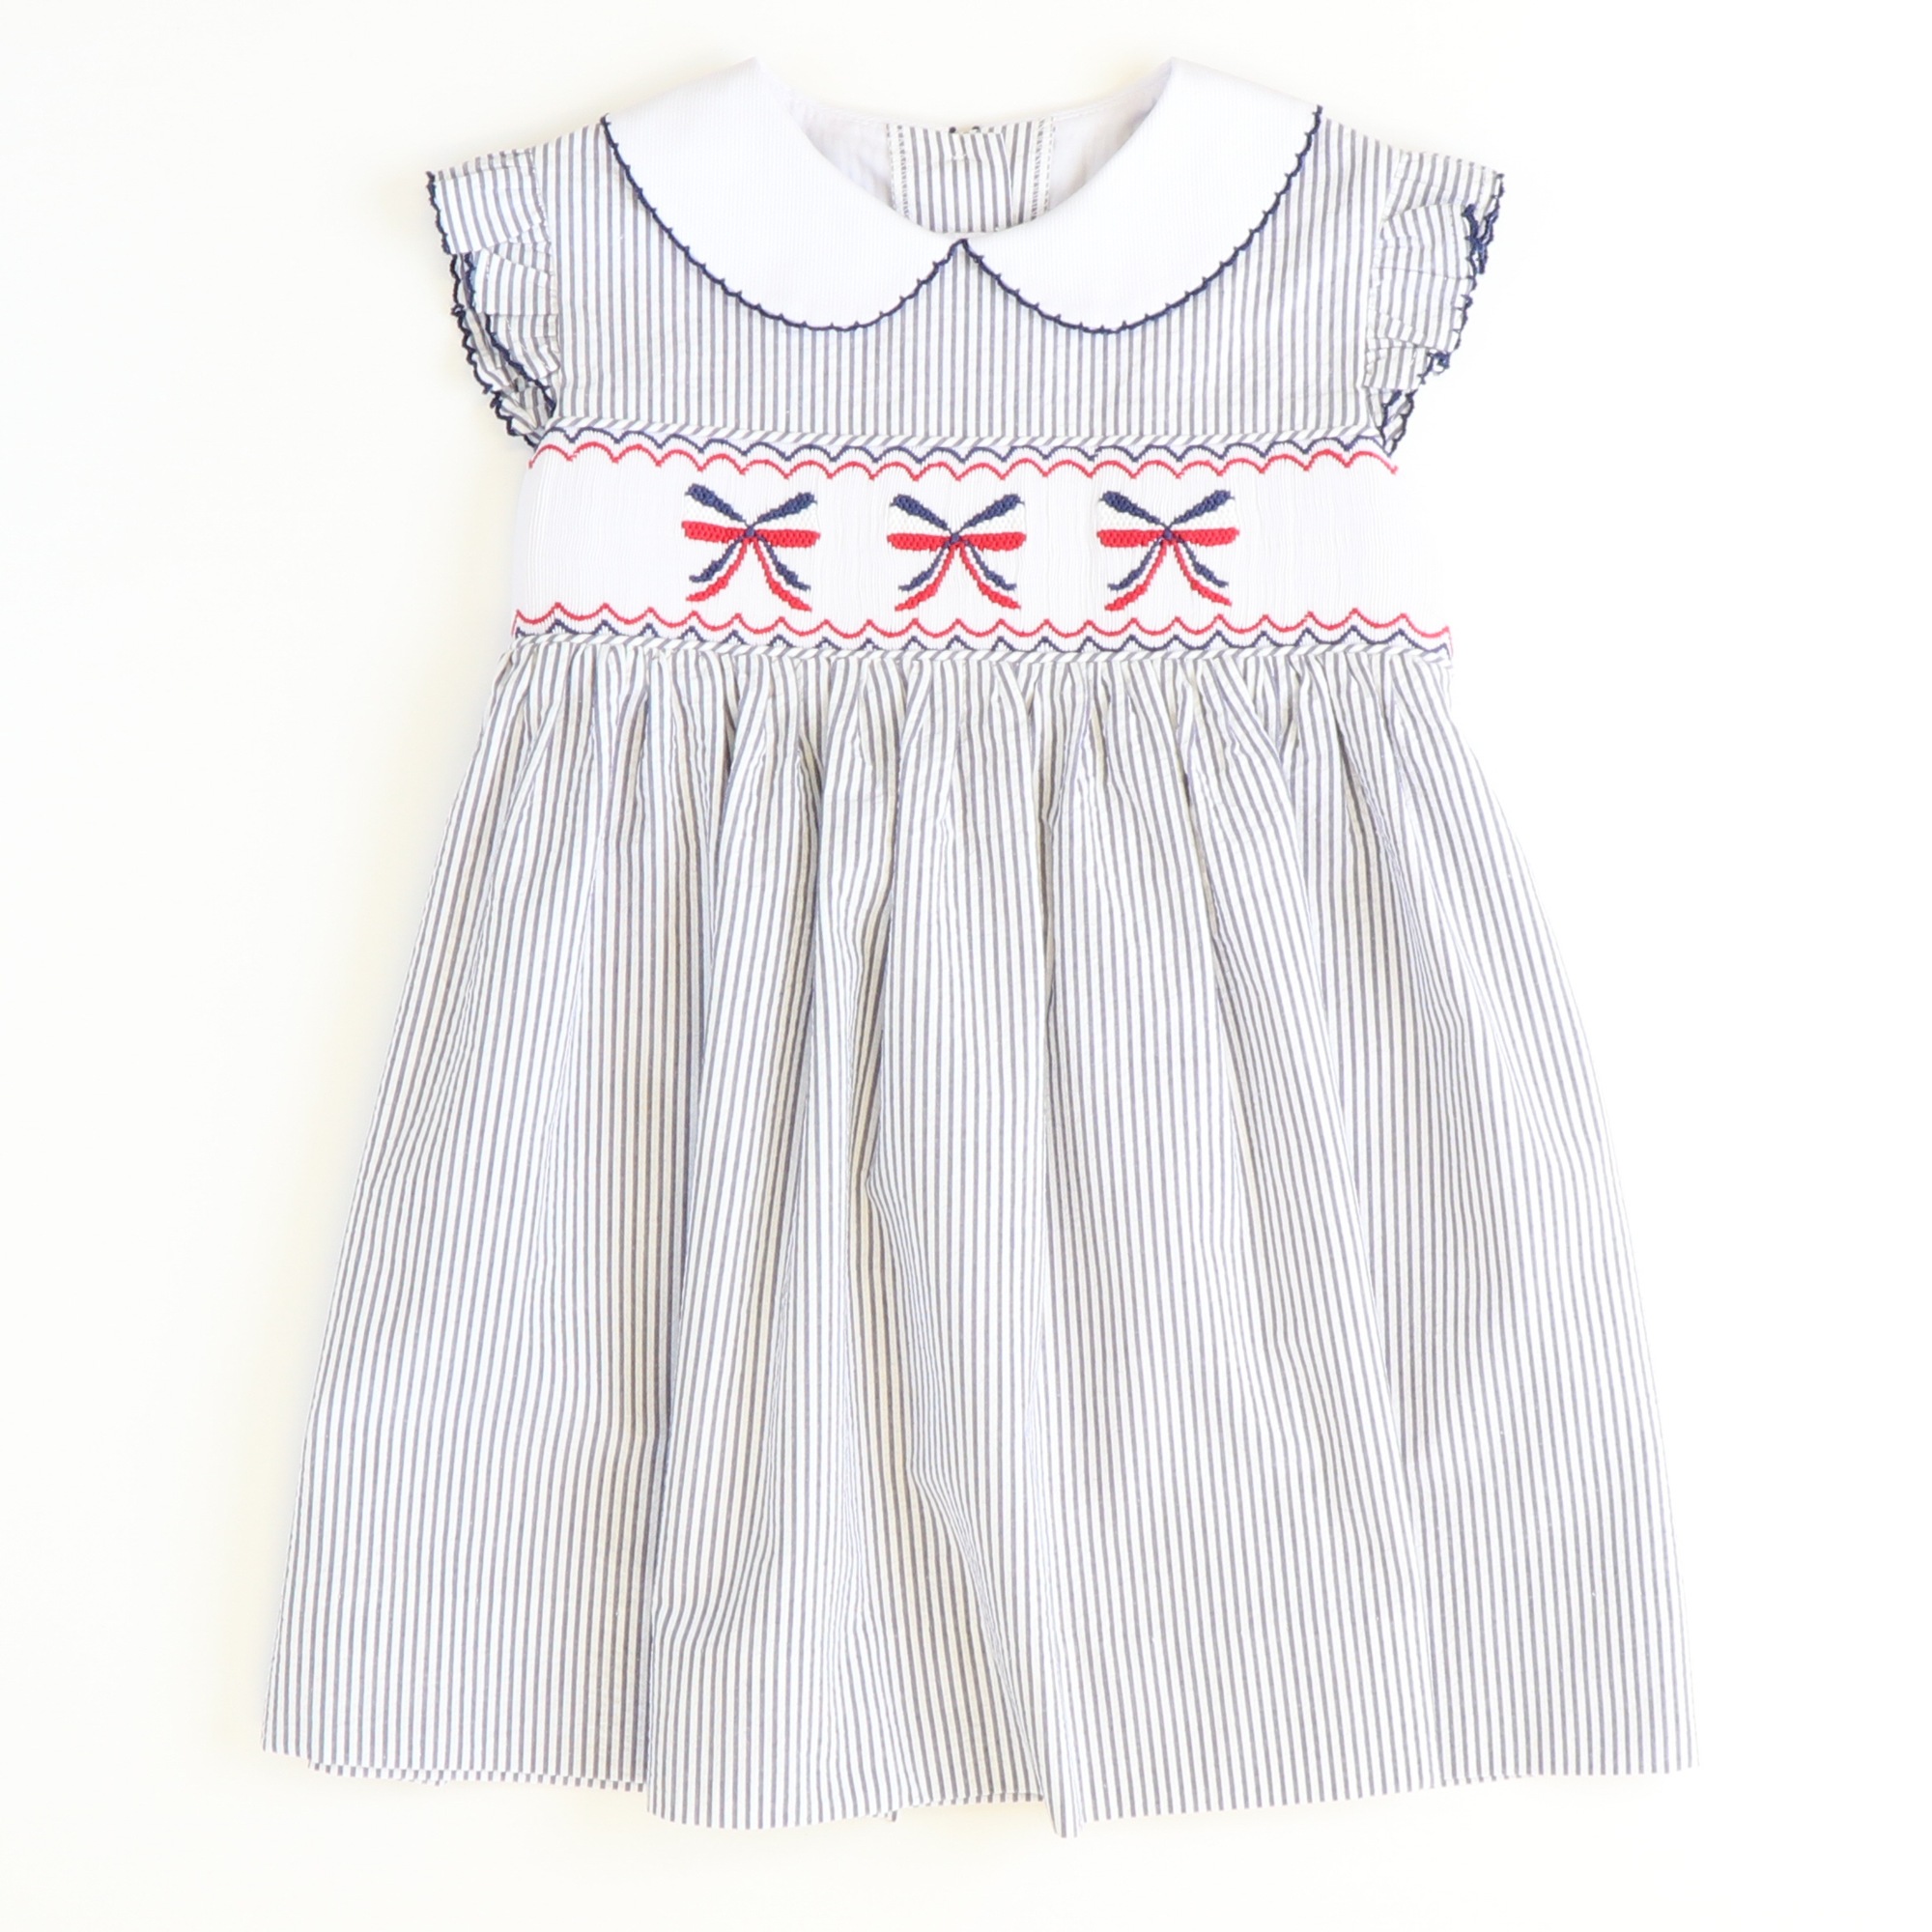 Smocked Americana Bows Collared Dress - Navy Stripe Seersucker